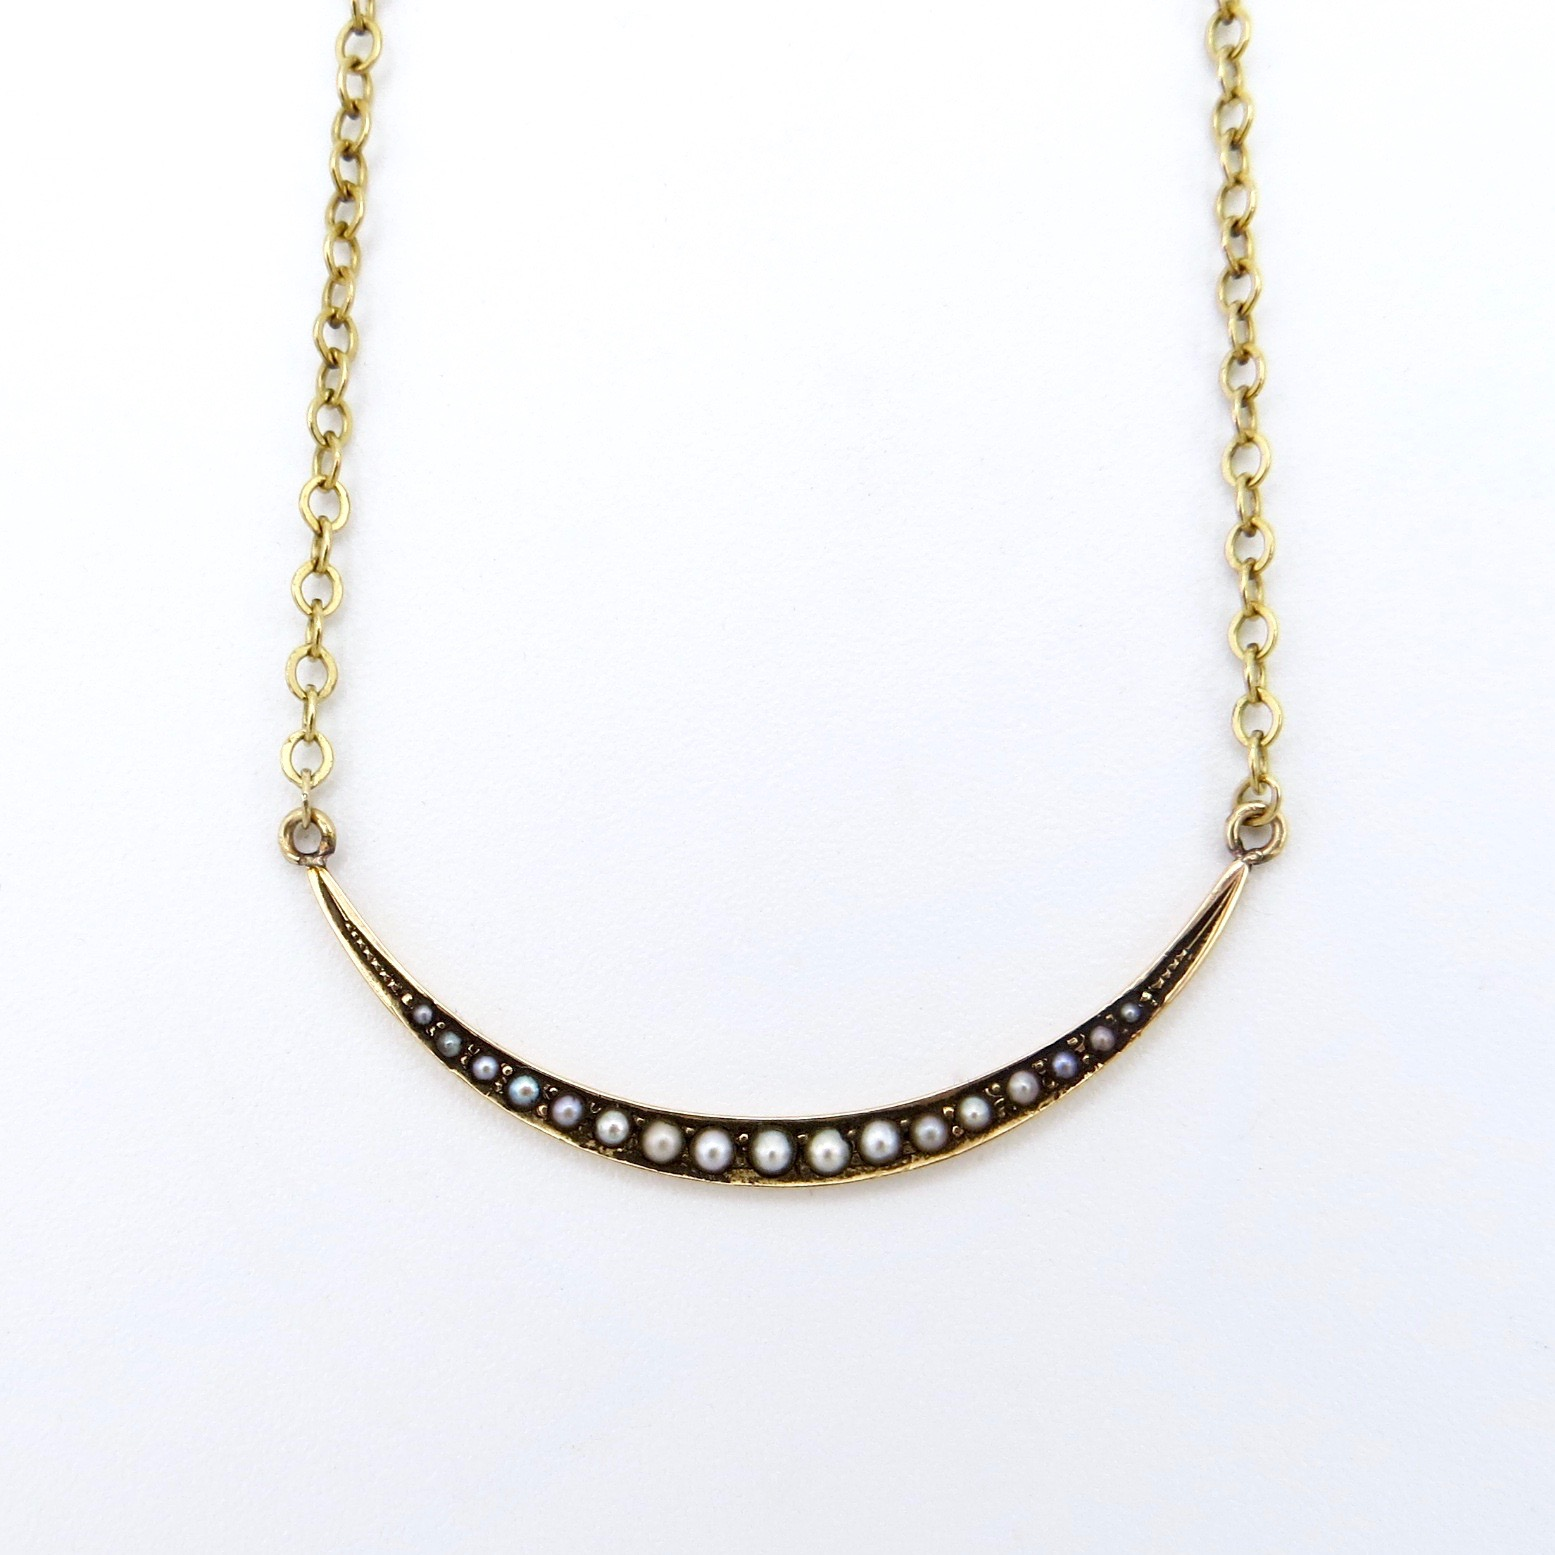 14kt Gold & Pearl Crescent Moon Layering Necklace (GF Chain)